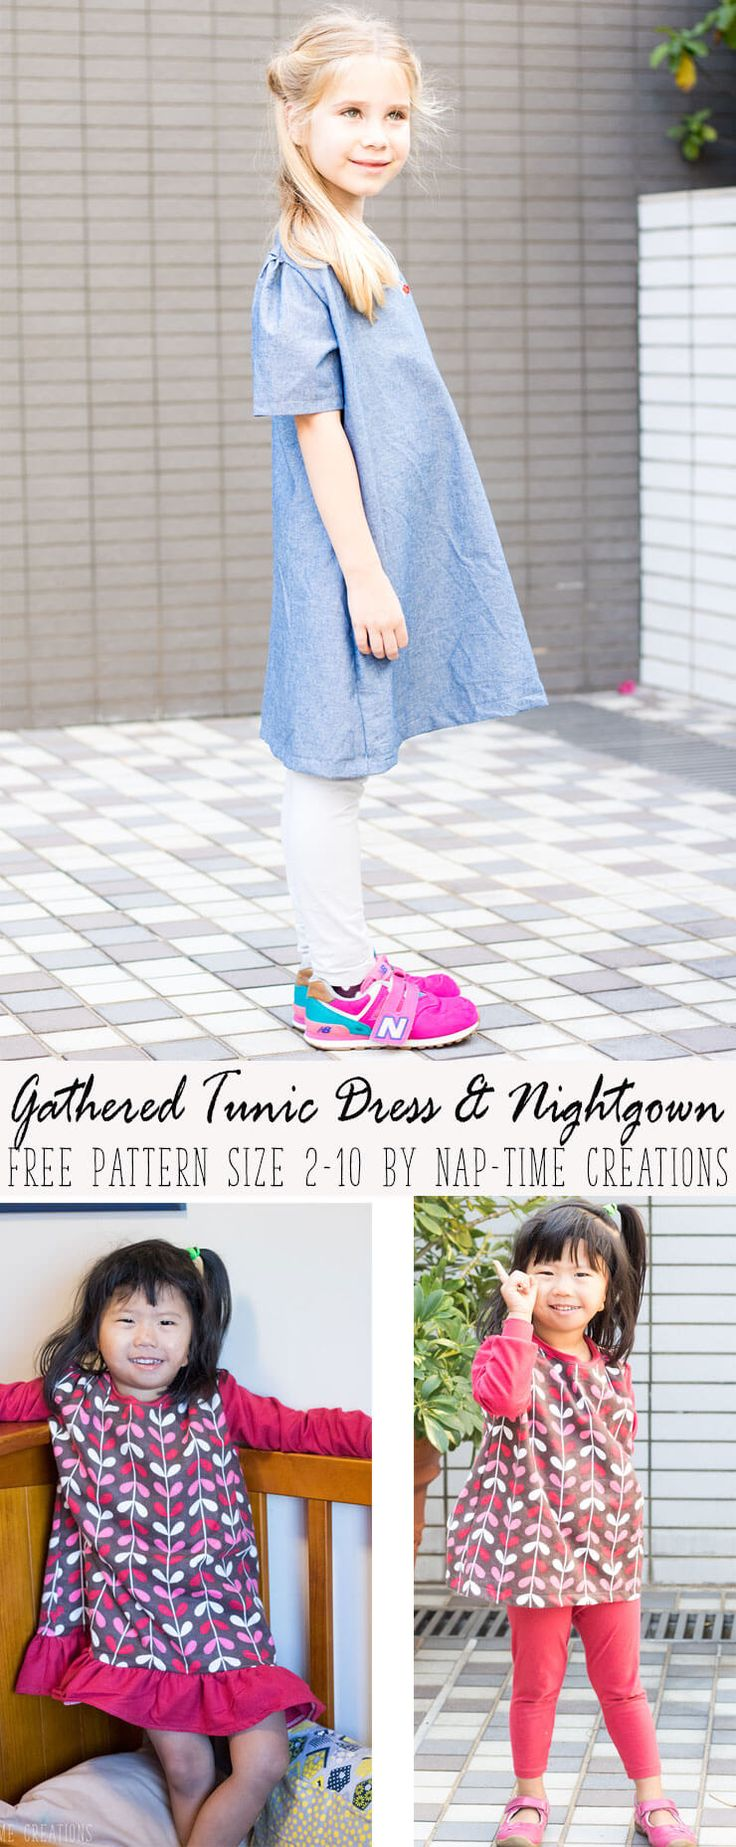 You are going to love this girls gathered tunic dress free pattern. You can also use it to make a nightgown. Versatile and perfect for play. and a FREE pdf.